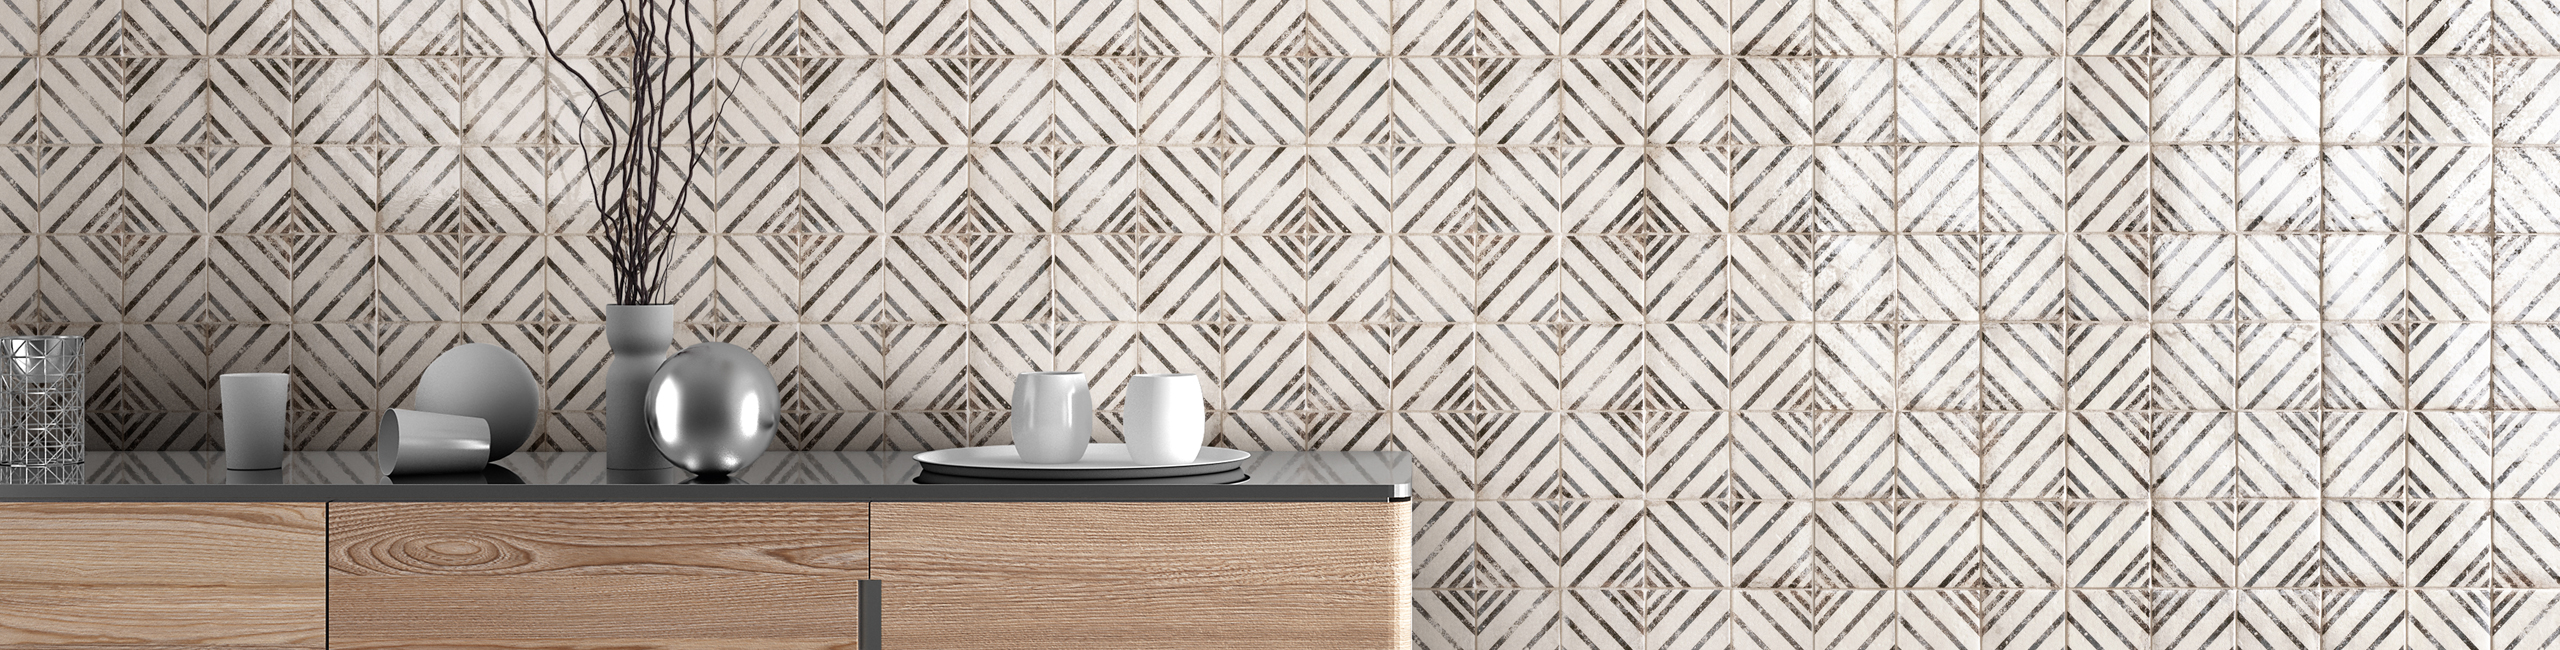 Vivace 4x 4 Decorative Tile in Rice Incline